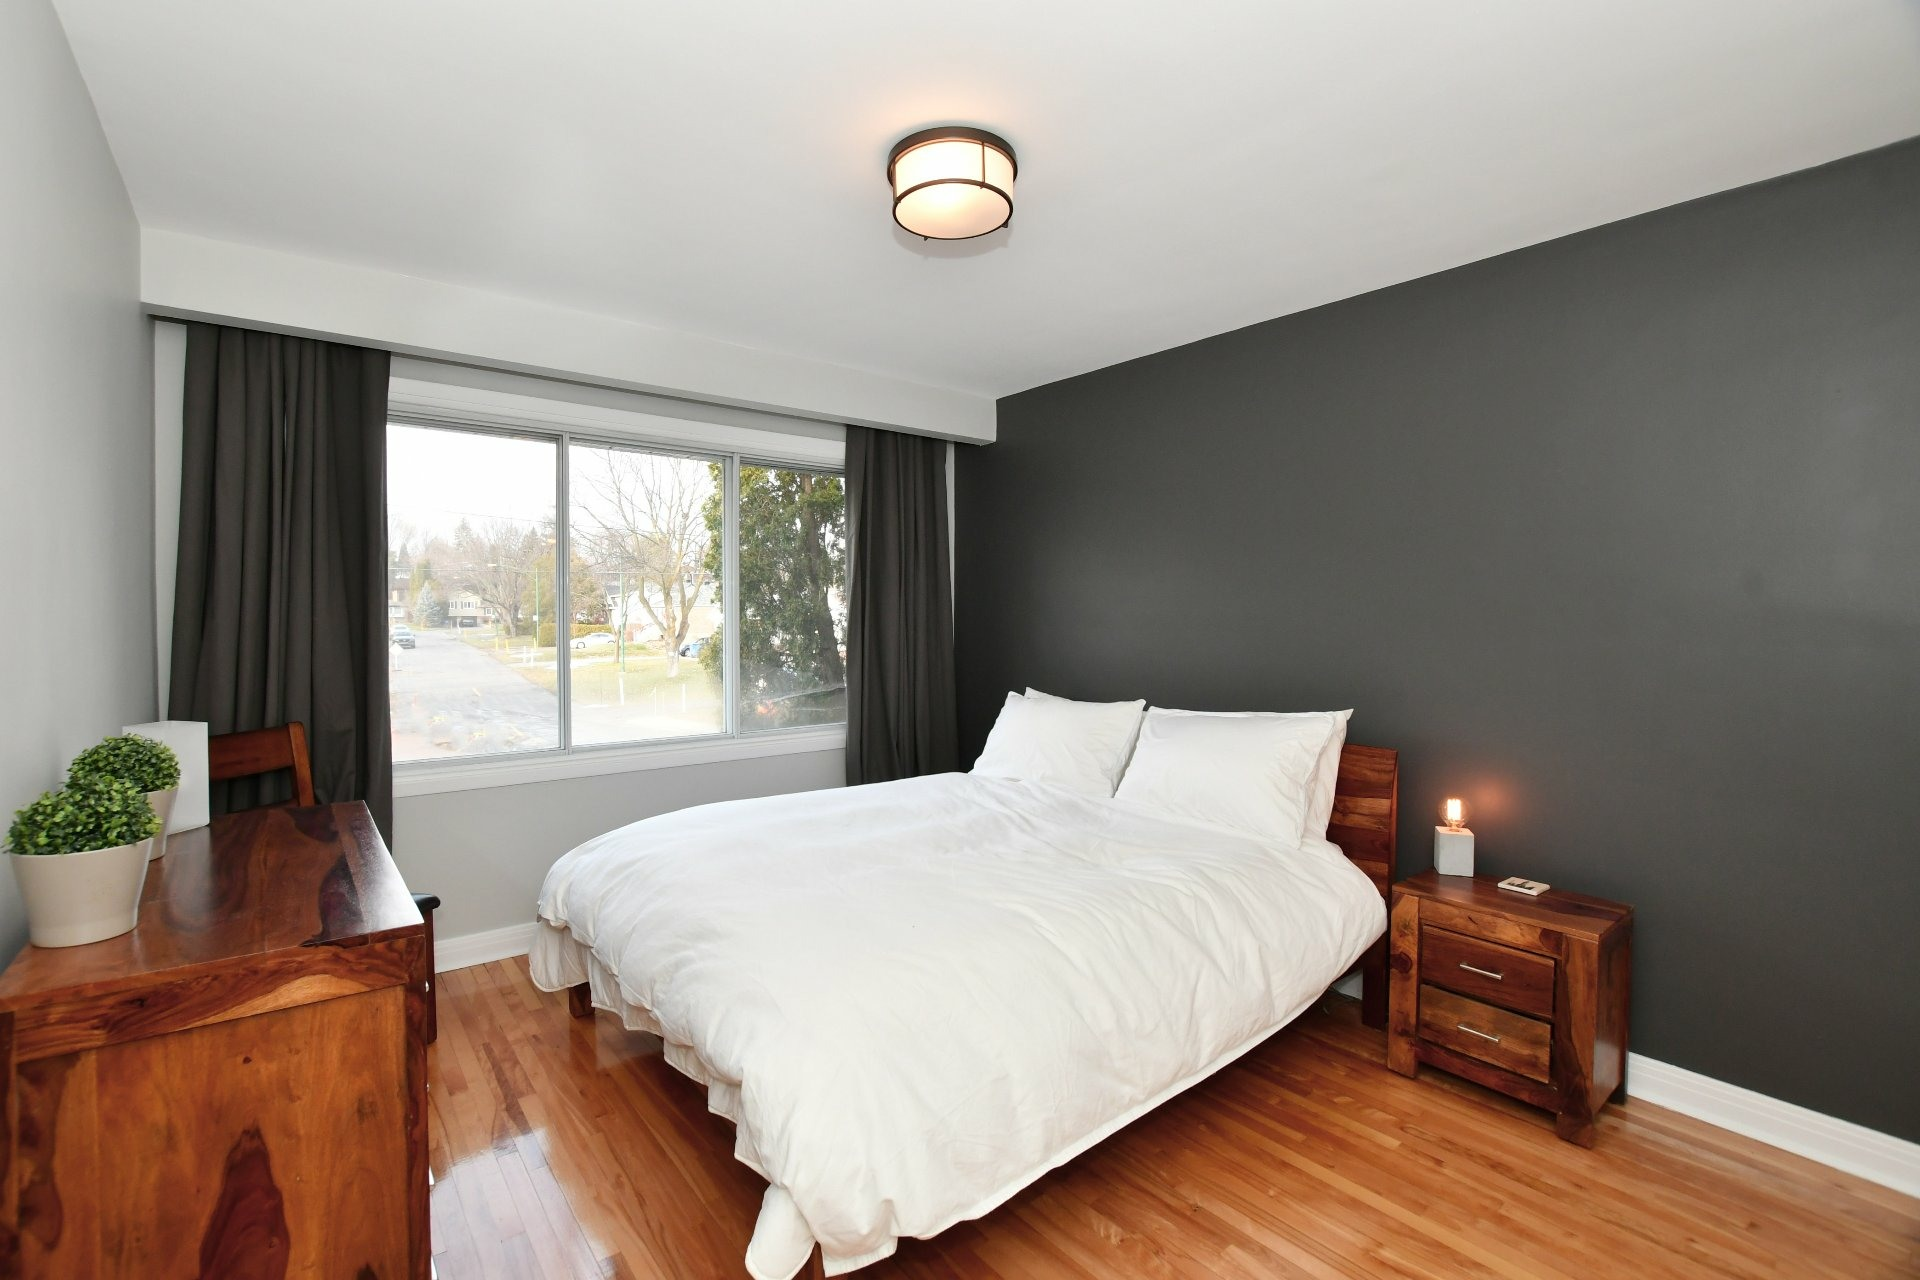 image 9 - House For sale Pointe-Claire - 10 rooms